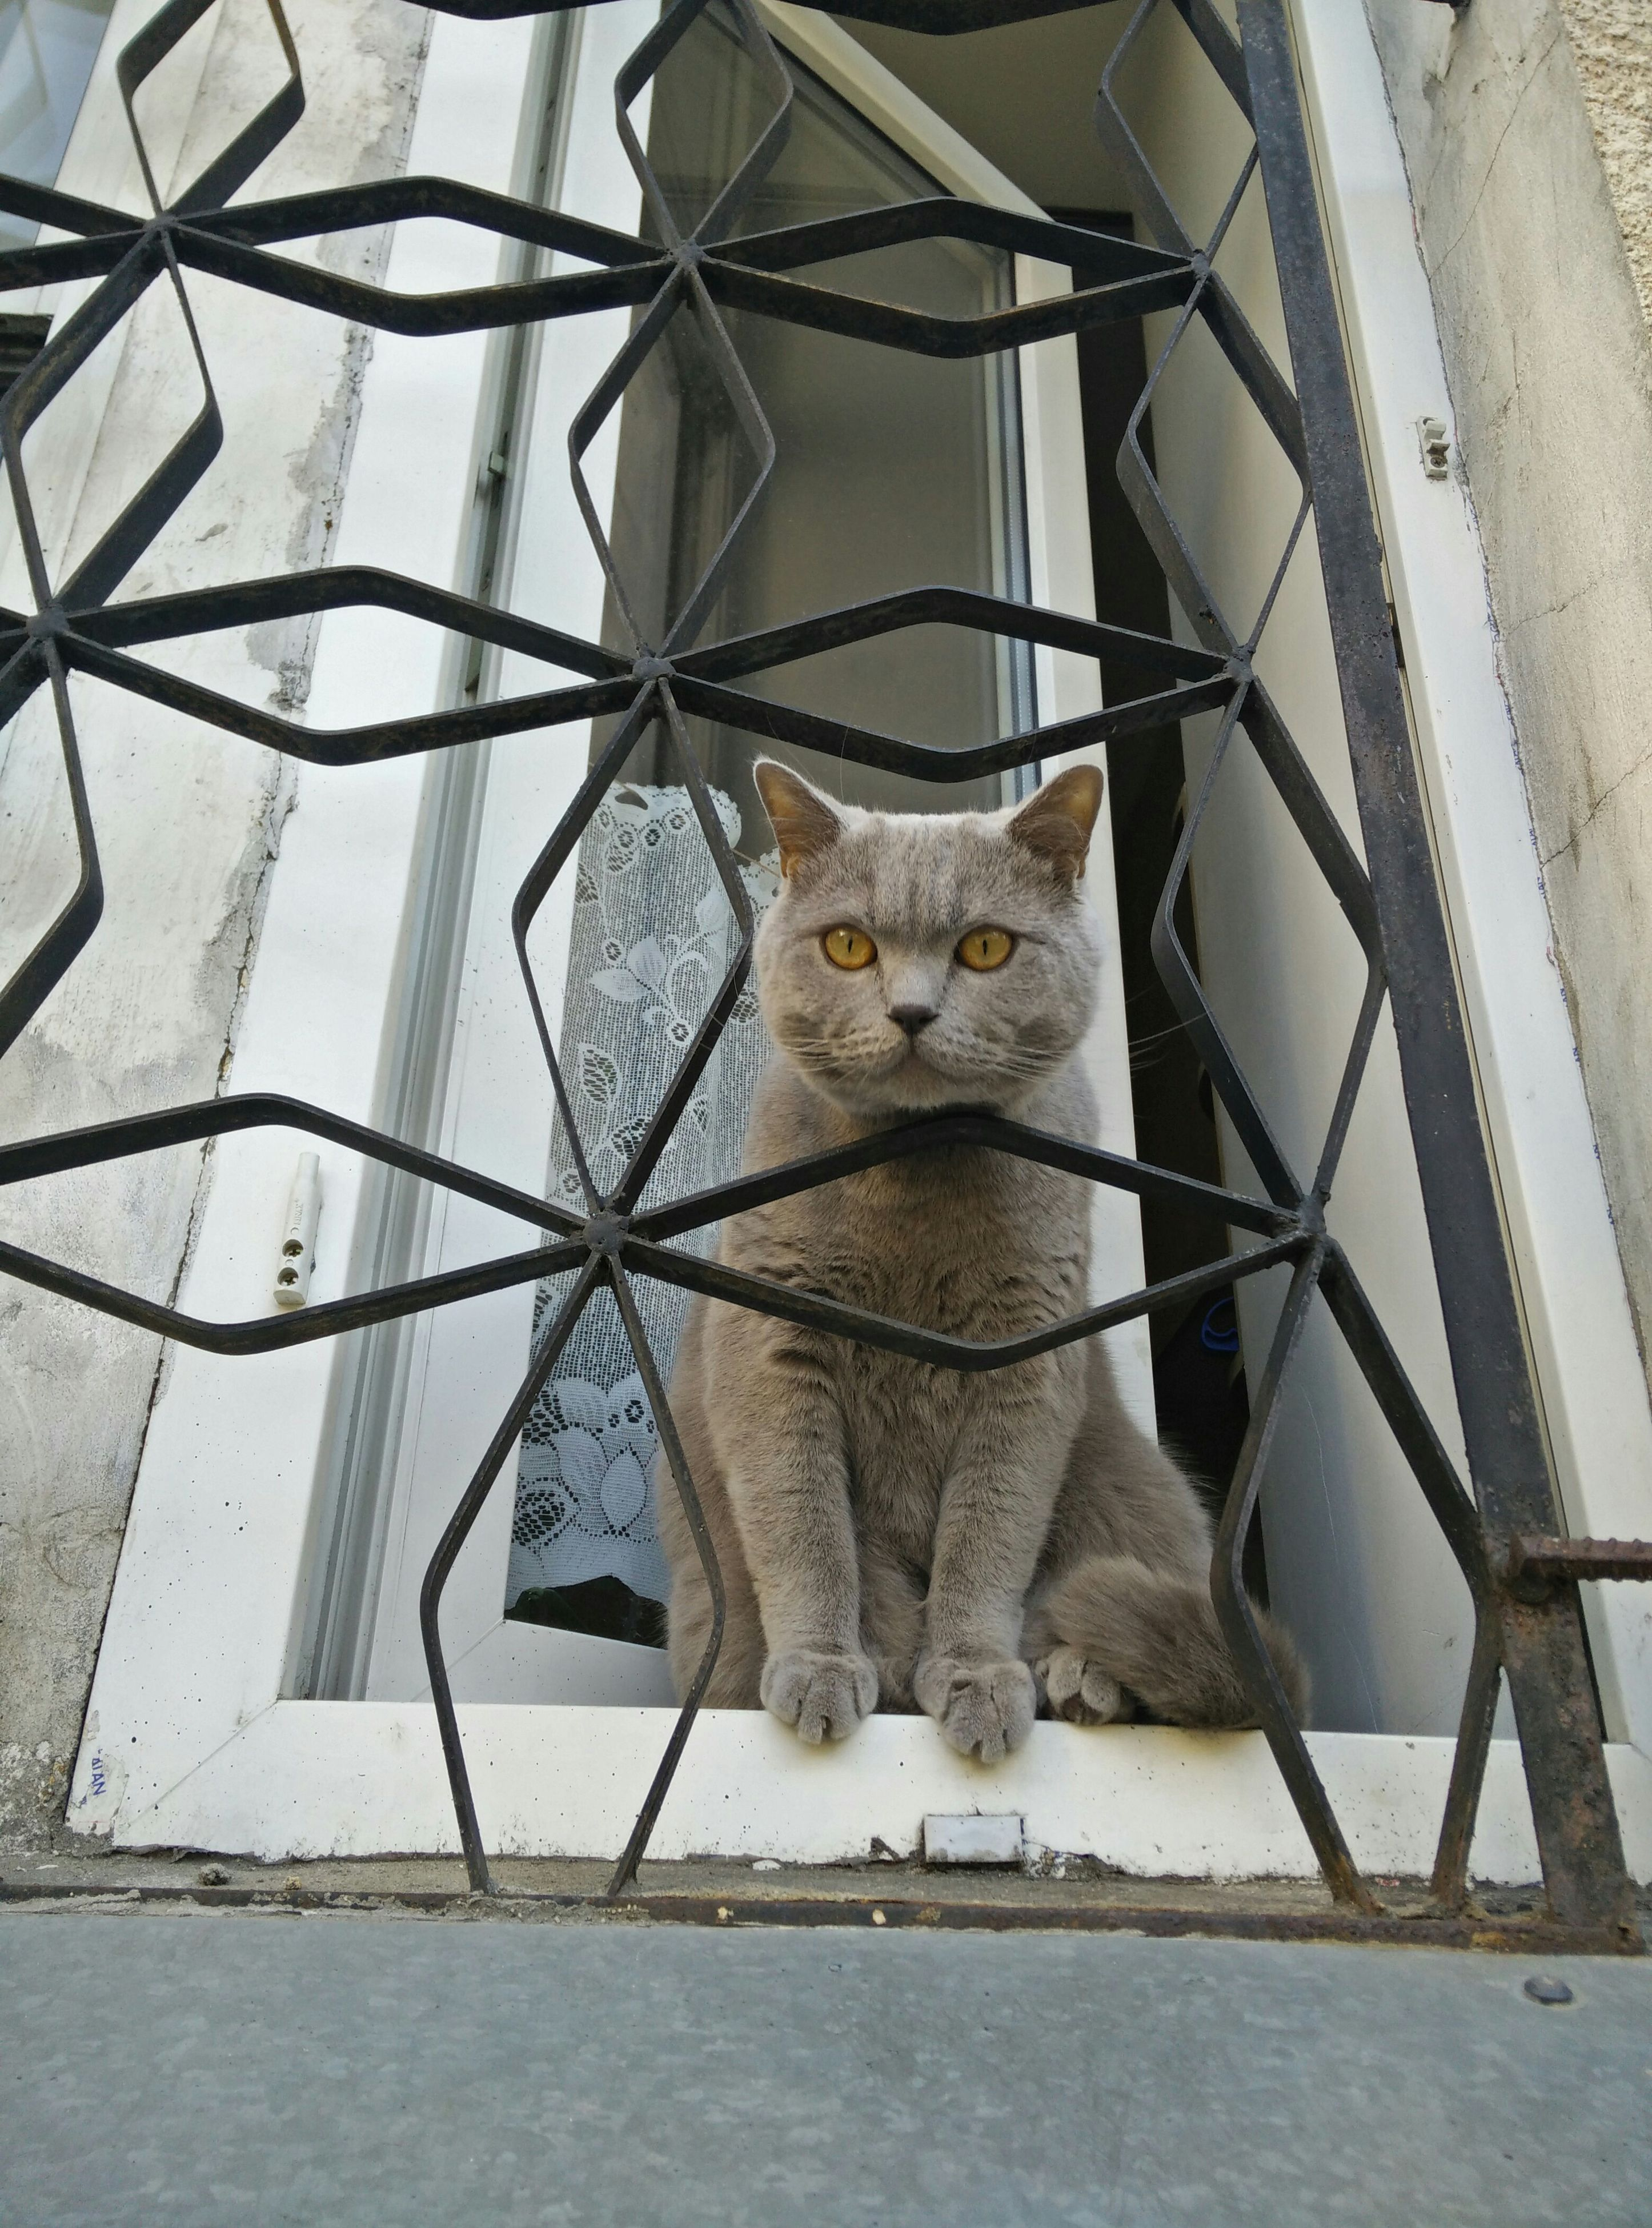 domestic animals, animal themes, mammal, one animal, pets, cage, portrait, domestic cat, white color, day, no people, cat, looking at camera, dog, chair, outdoors, metal, fence, built structure, close-up